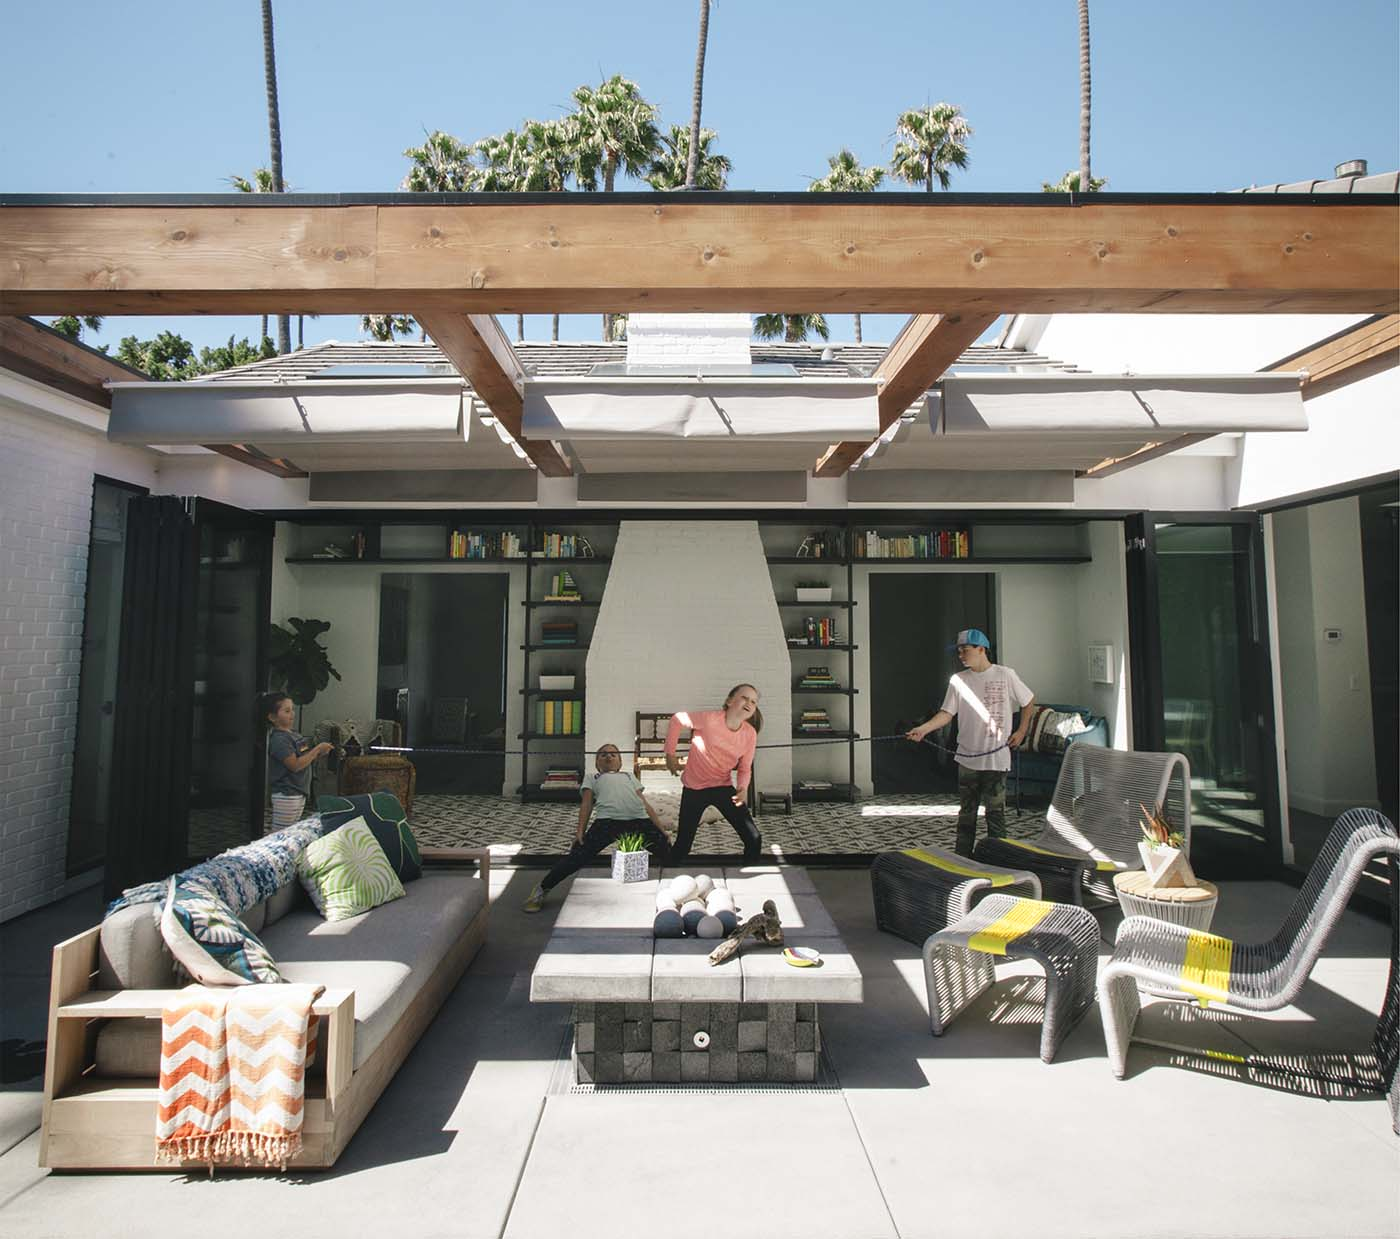 The outdoor area of a house in California with outdoor tables, chairs and children playing around